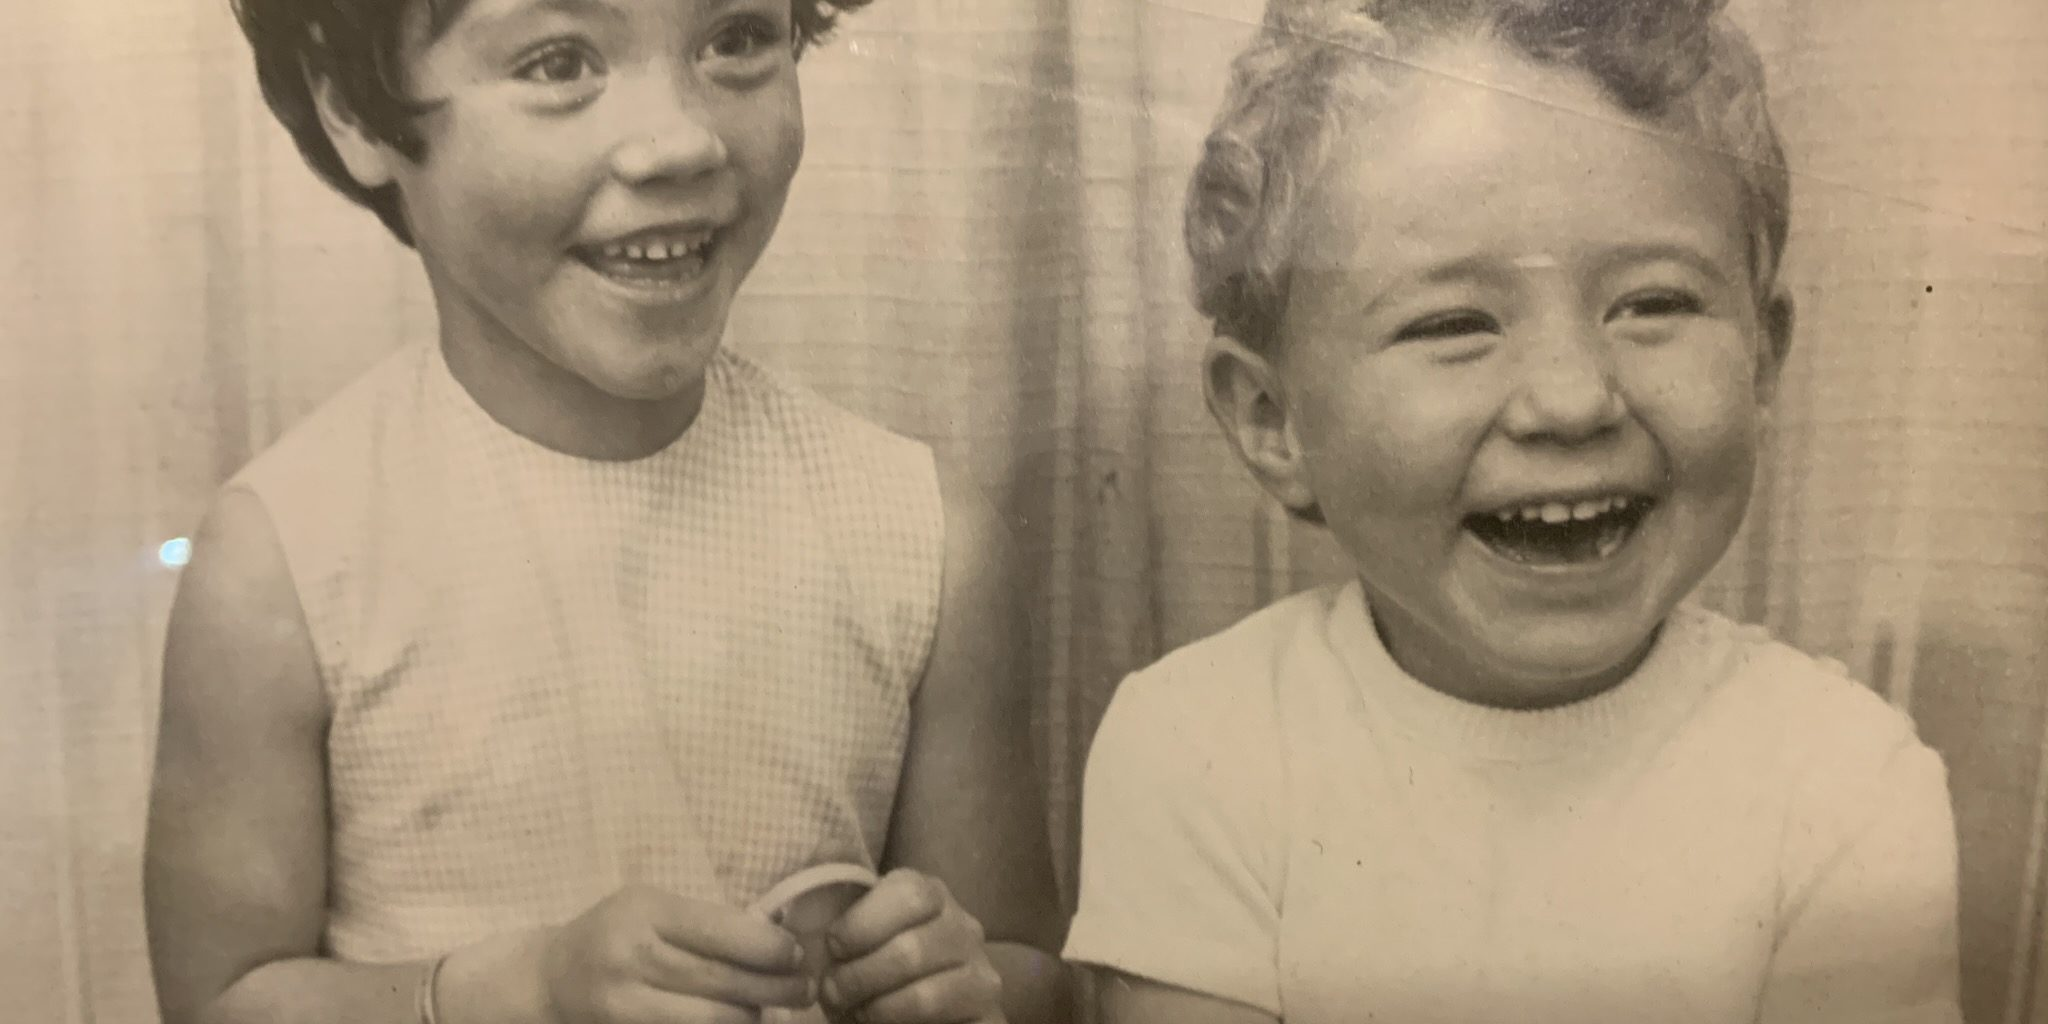 Photo of me and my sister . Happy too x😄